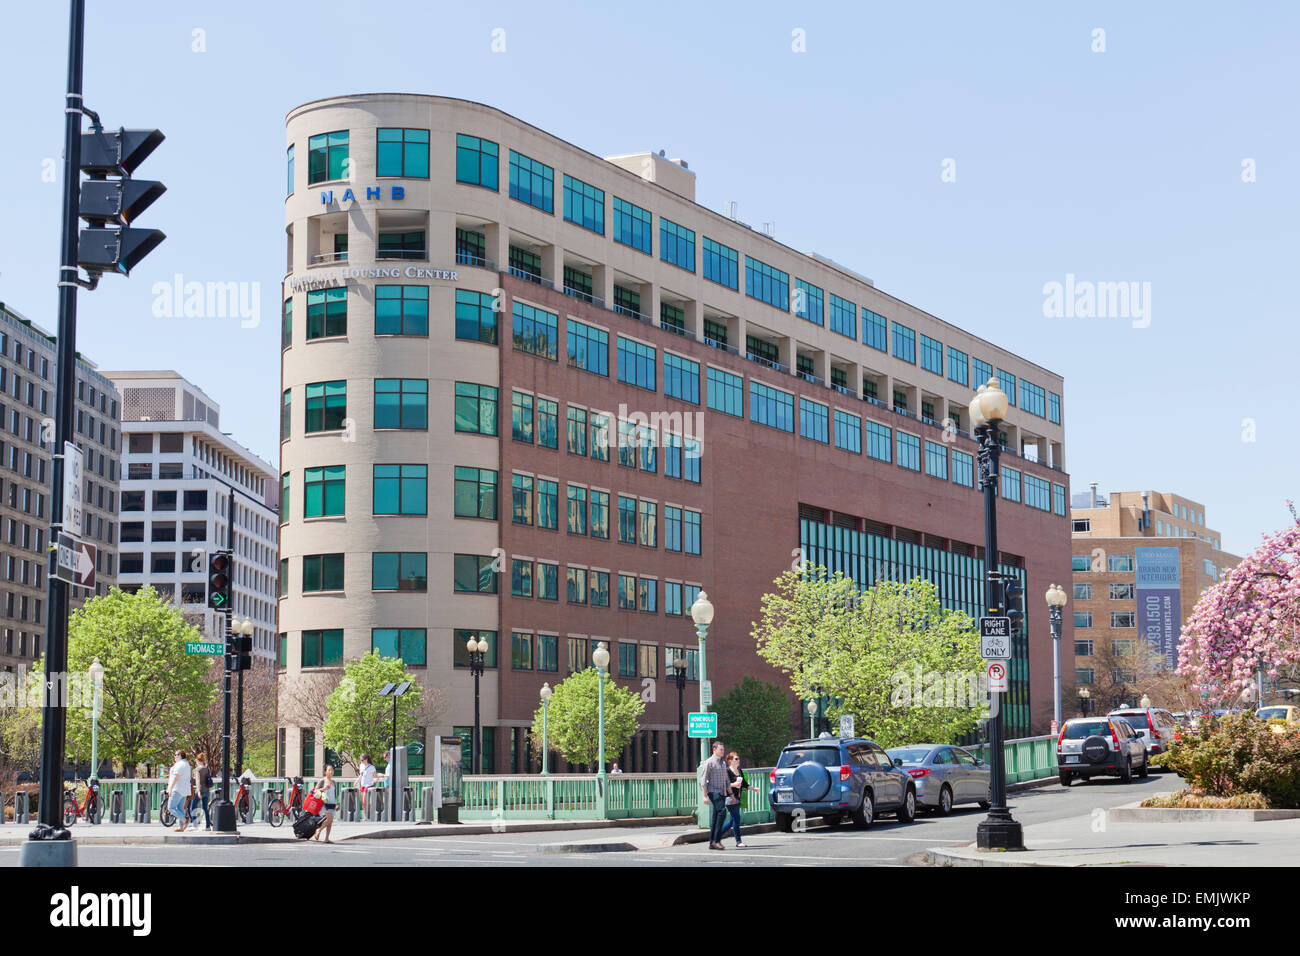 National Association of Home Builders building - Washington, DC USA - Stock Image